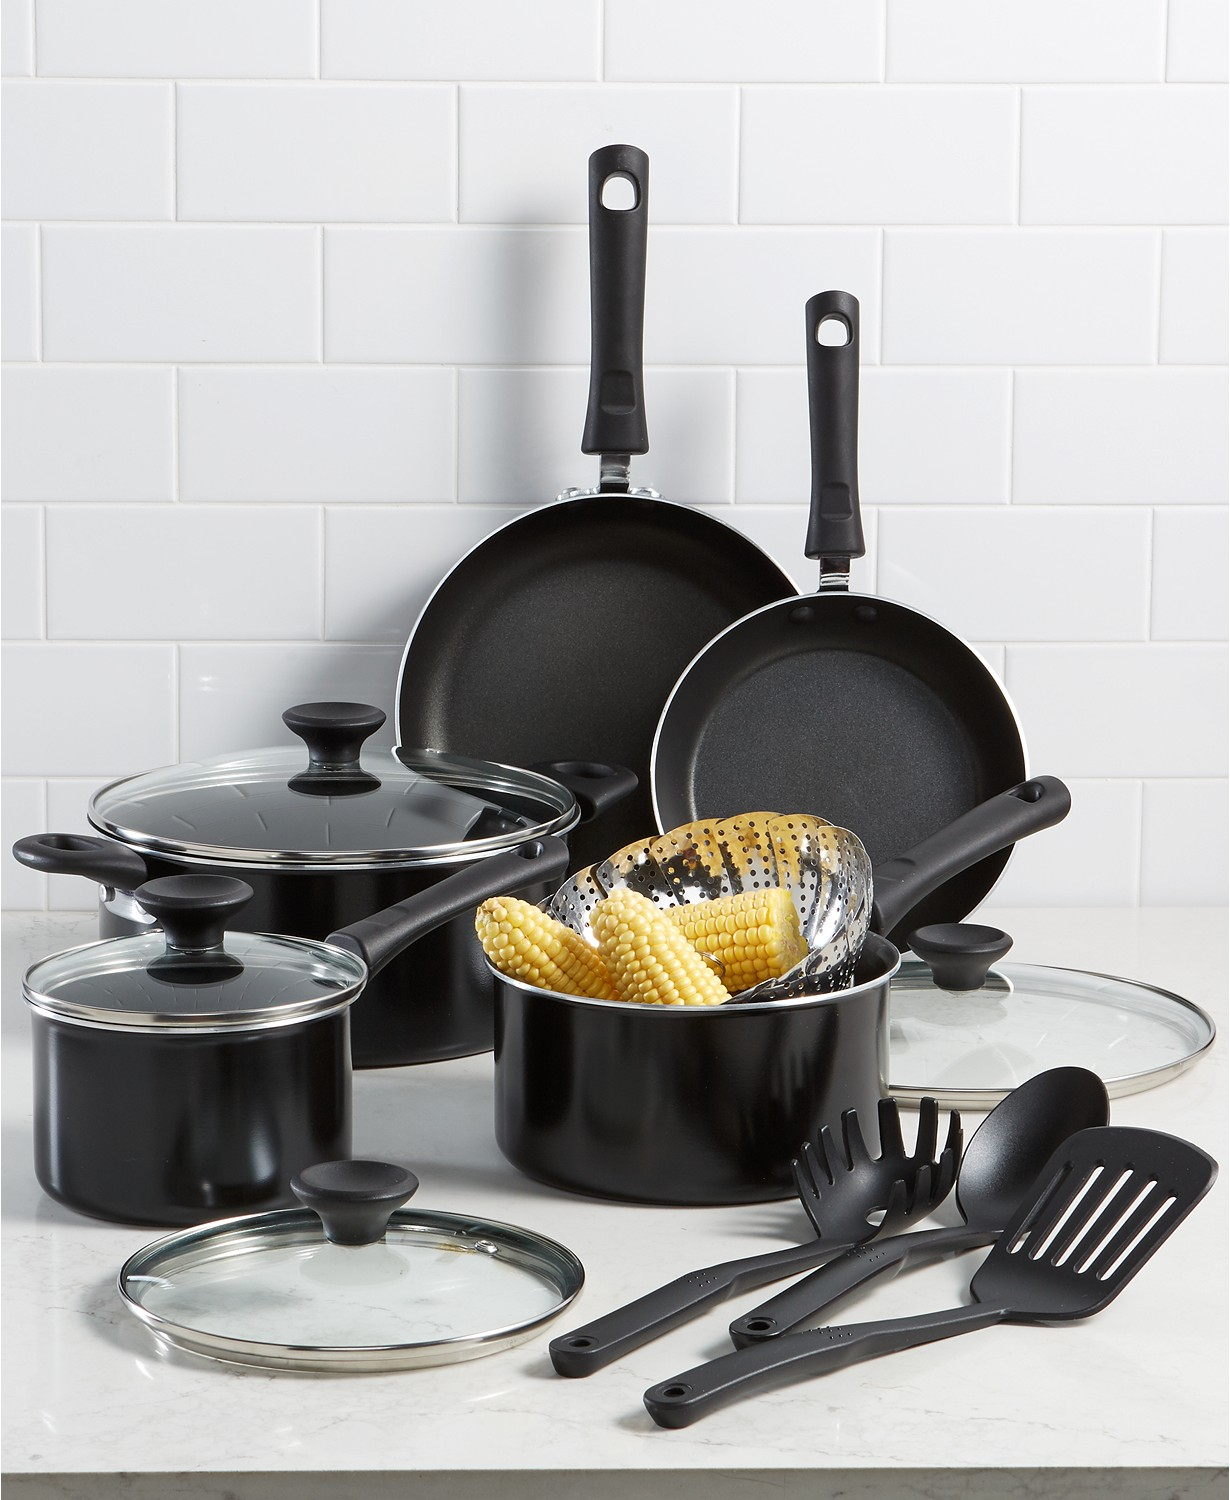 Nonstick 13-Pc. Cookware Set $44.99